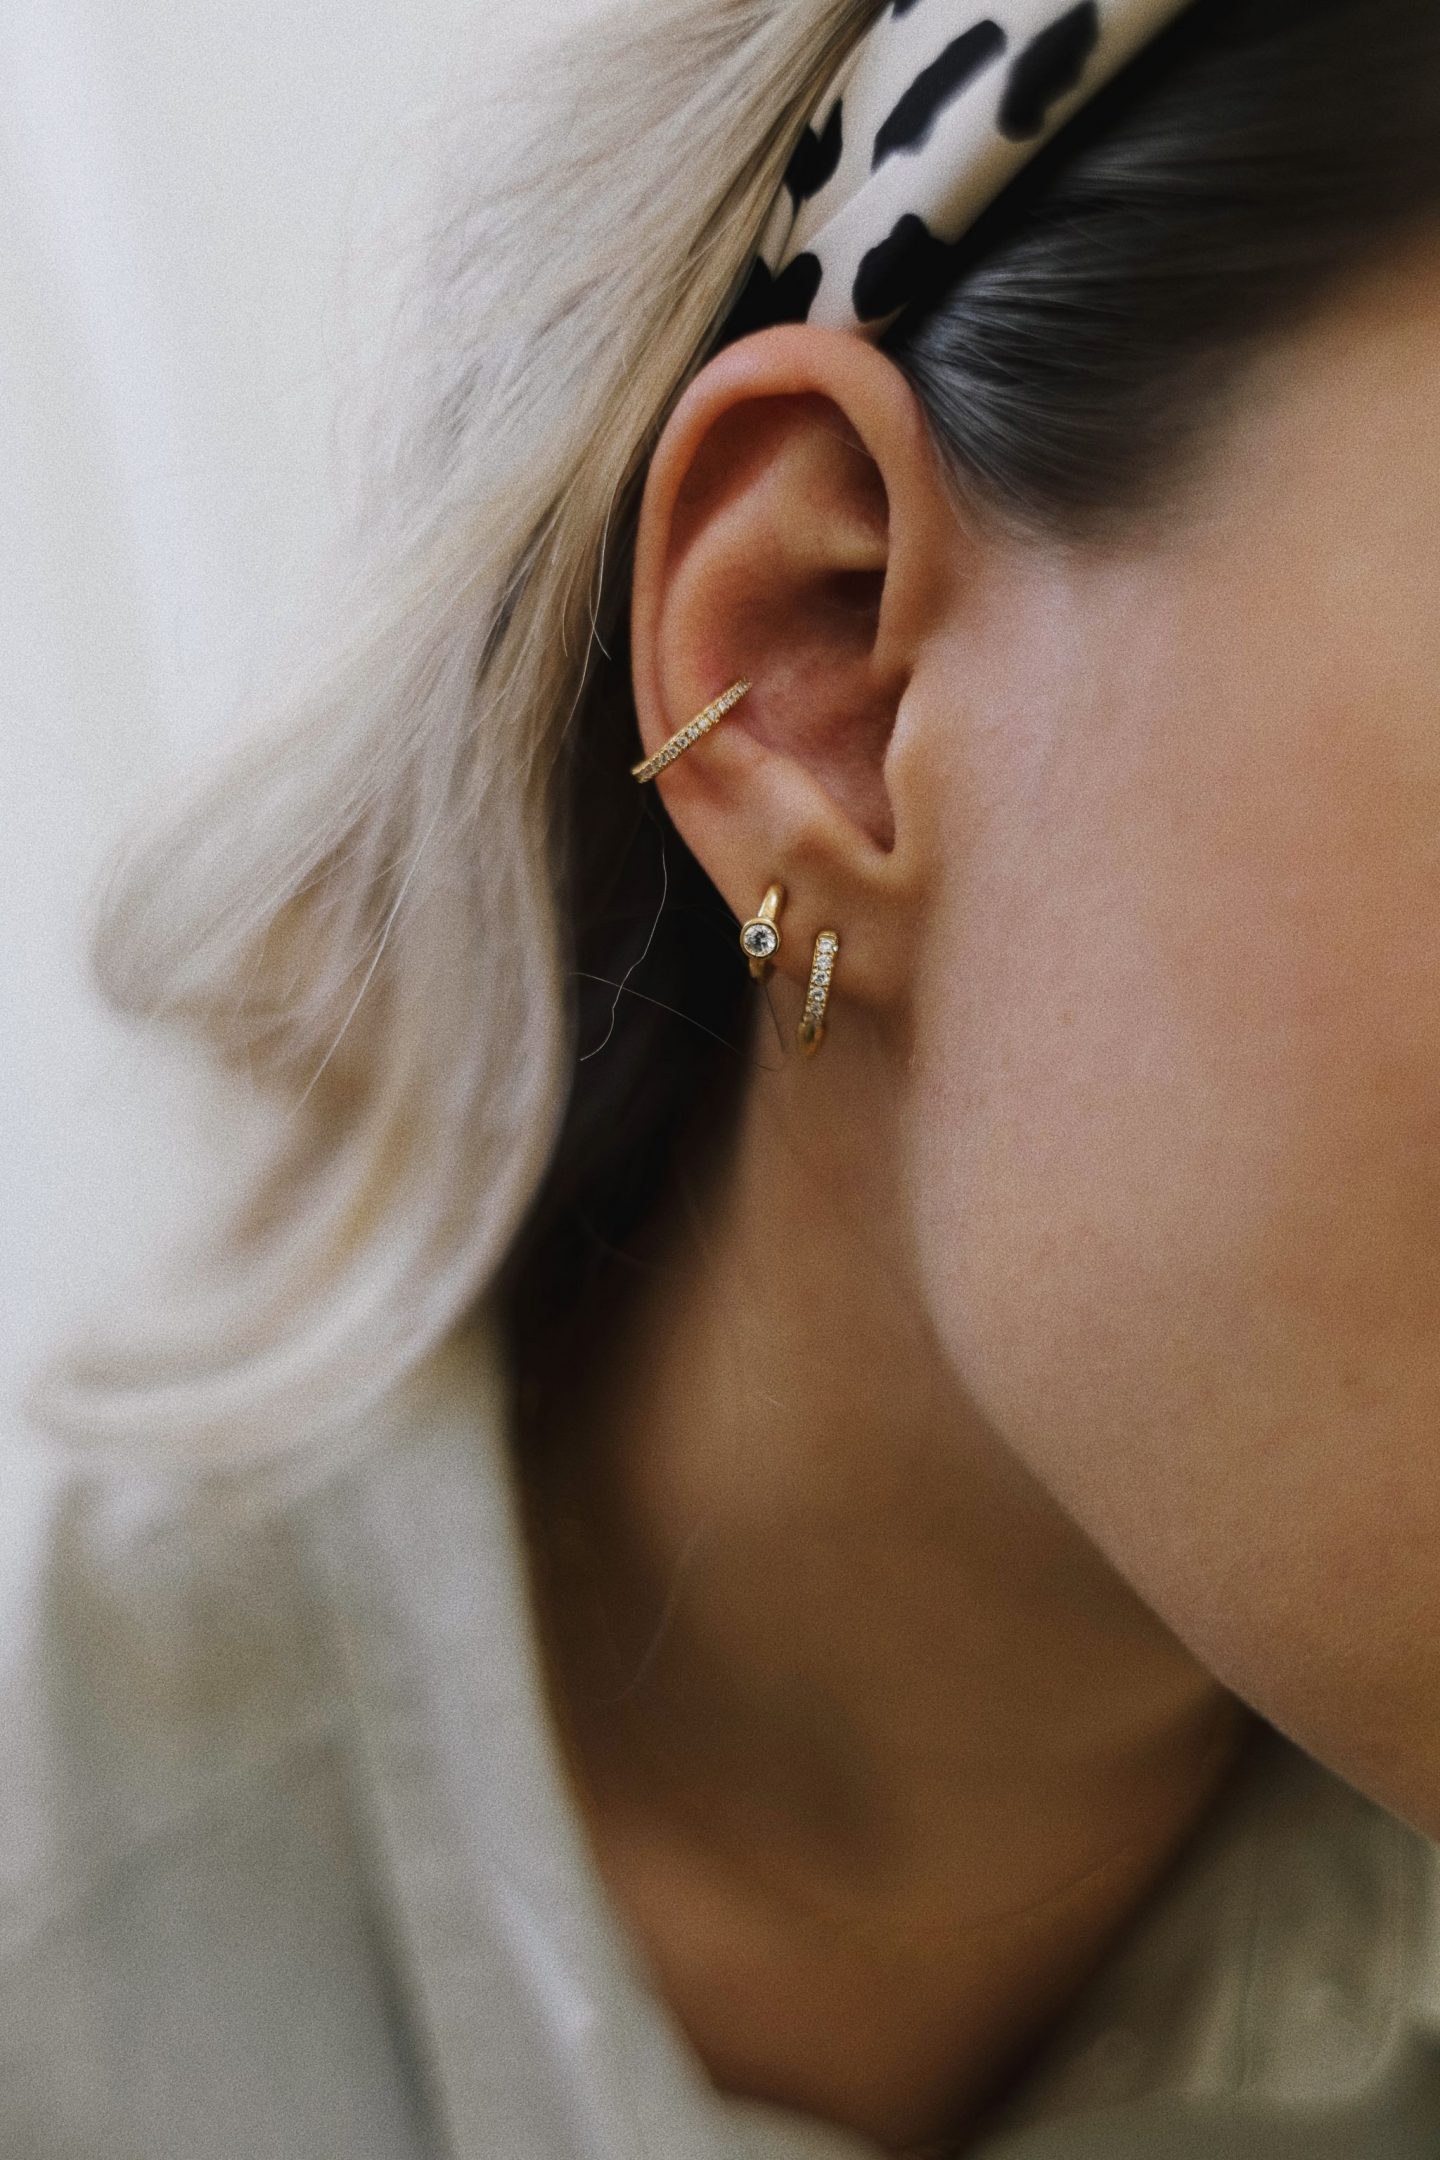 The gorgeous pieces which will jazz up your ear candy and turn you into an earring magpie…